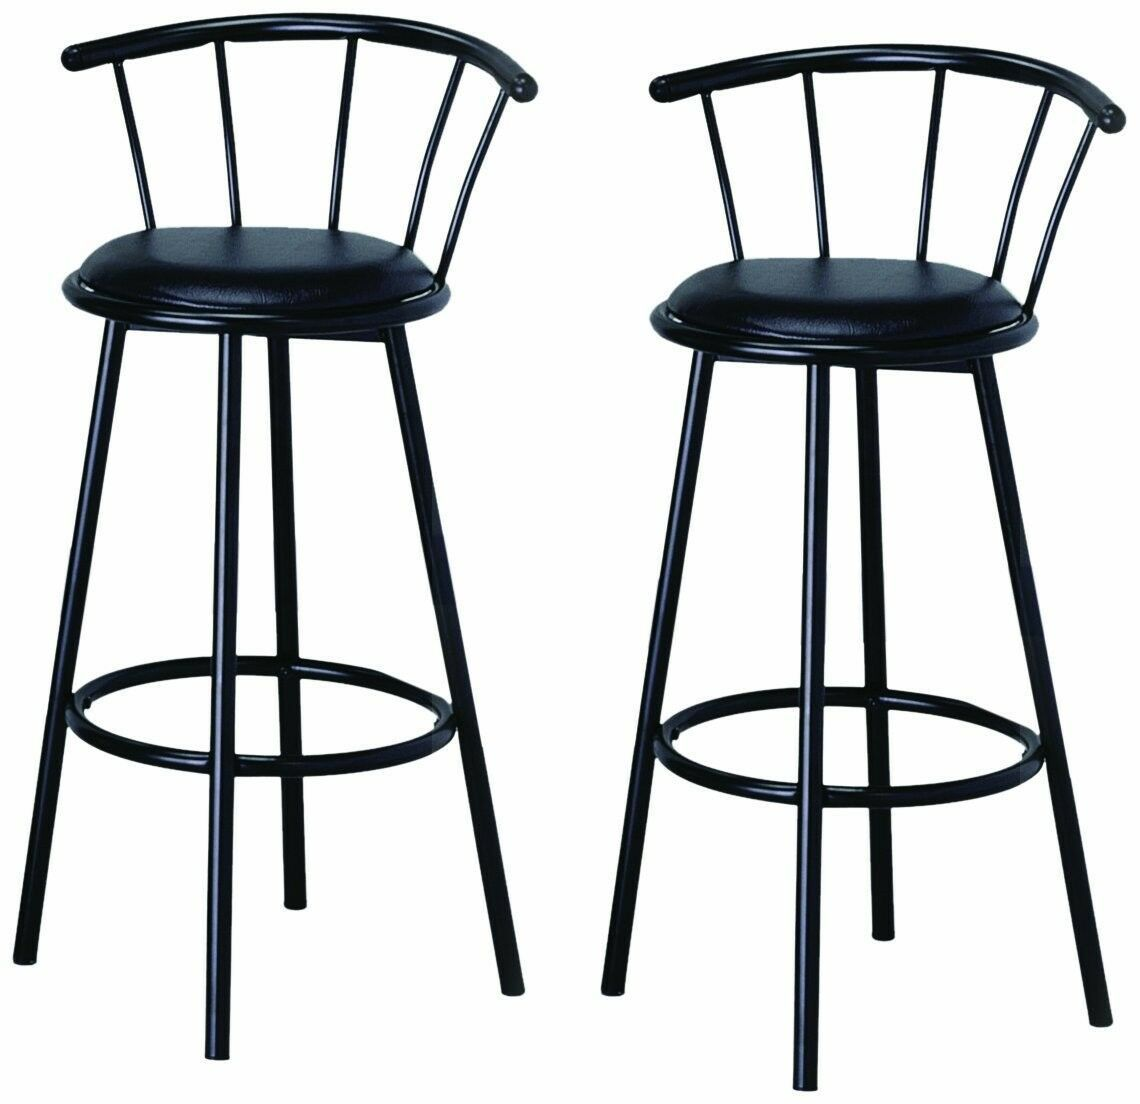 Leather Bar Stool Replacement Seats Leather Bar Stool Replacement Seats Please Click Link To Find More Refer In 2020 Metal Bar Stools Bar Stools Swivel Bar Stools